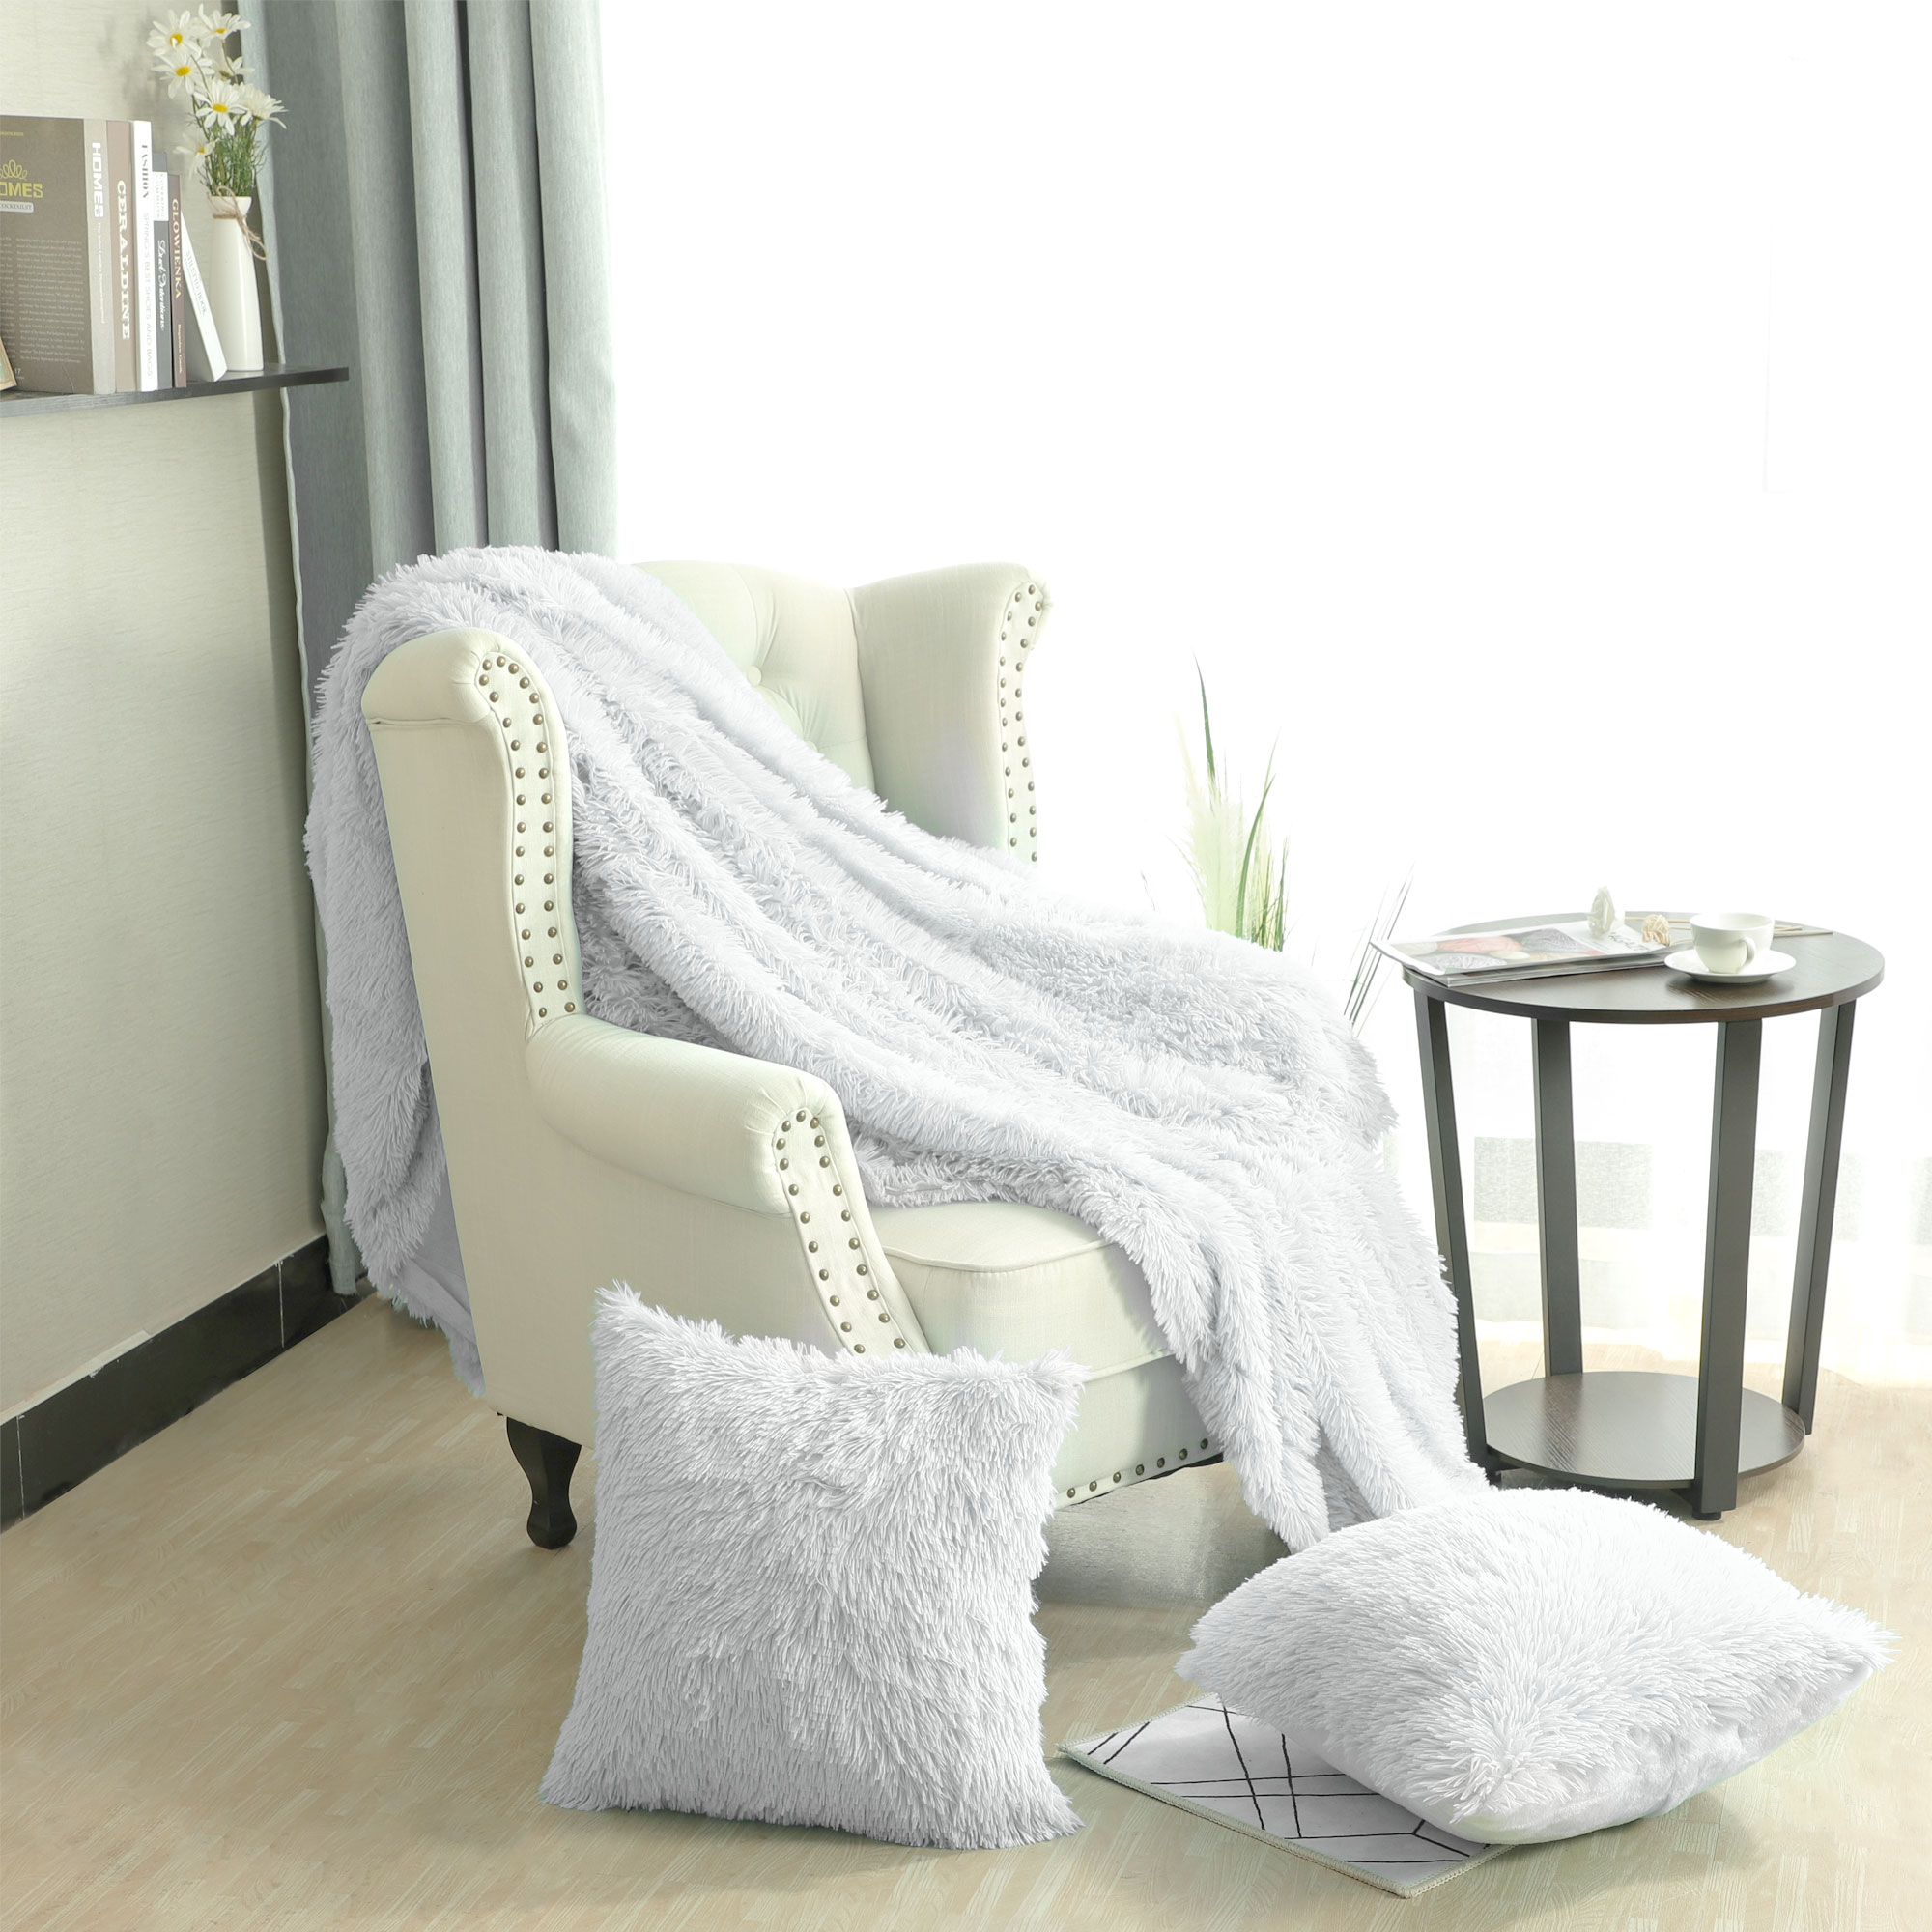 Lightweight Soft Shaggy Faux Fur White Throw Blanket with Pillow Case Set